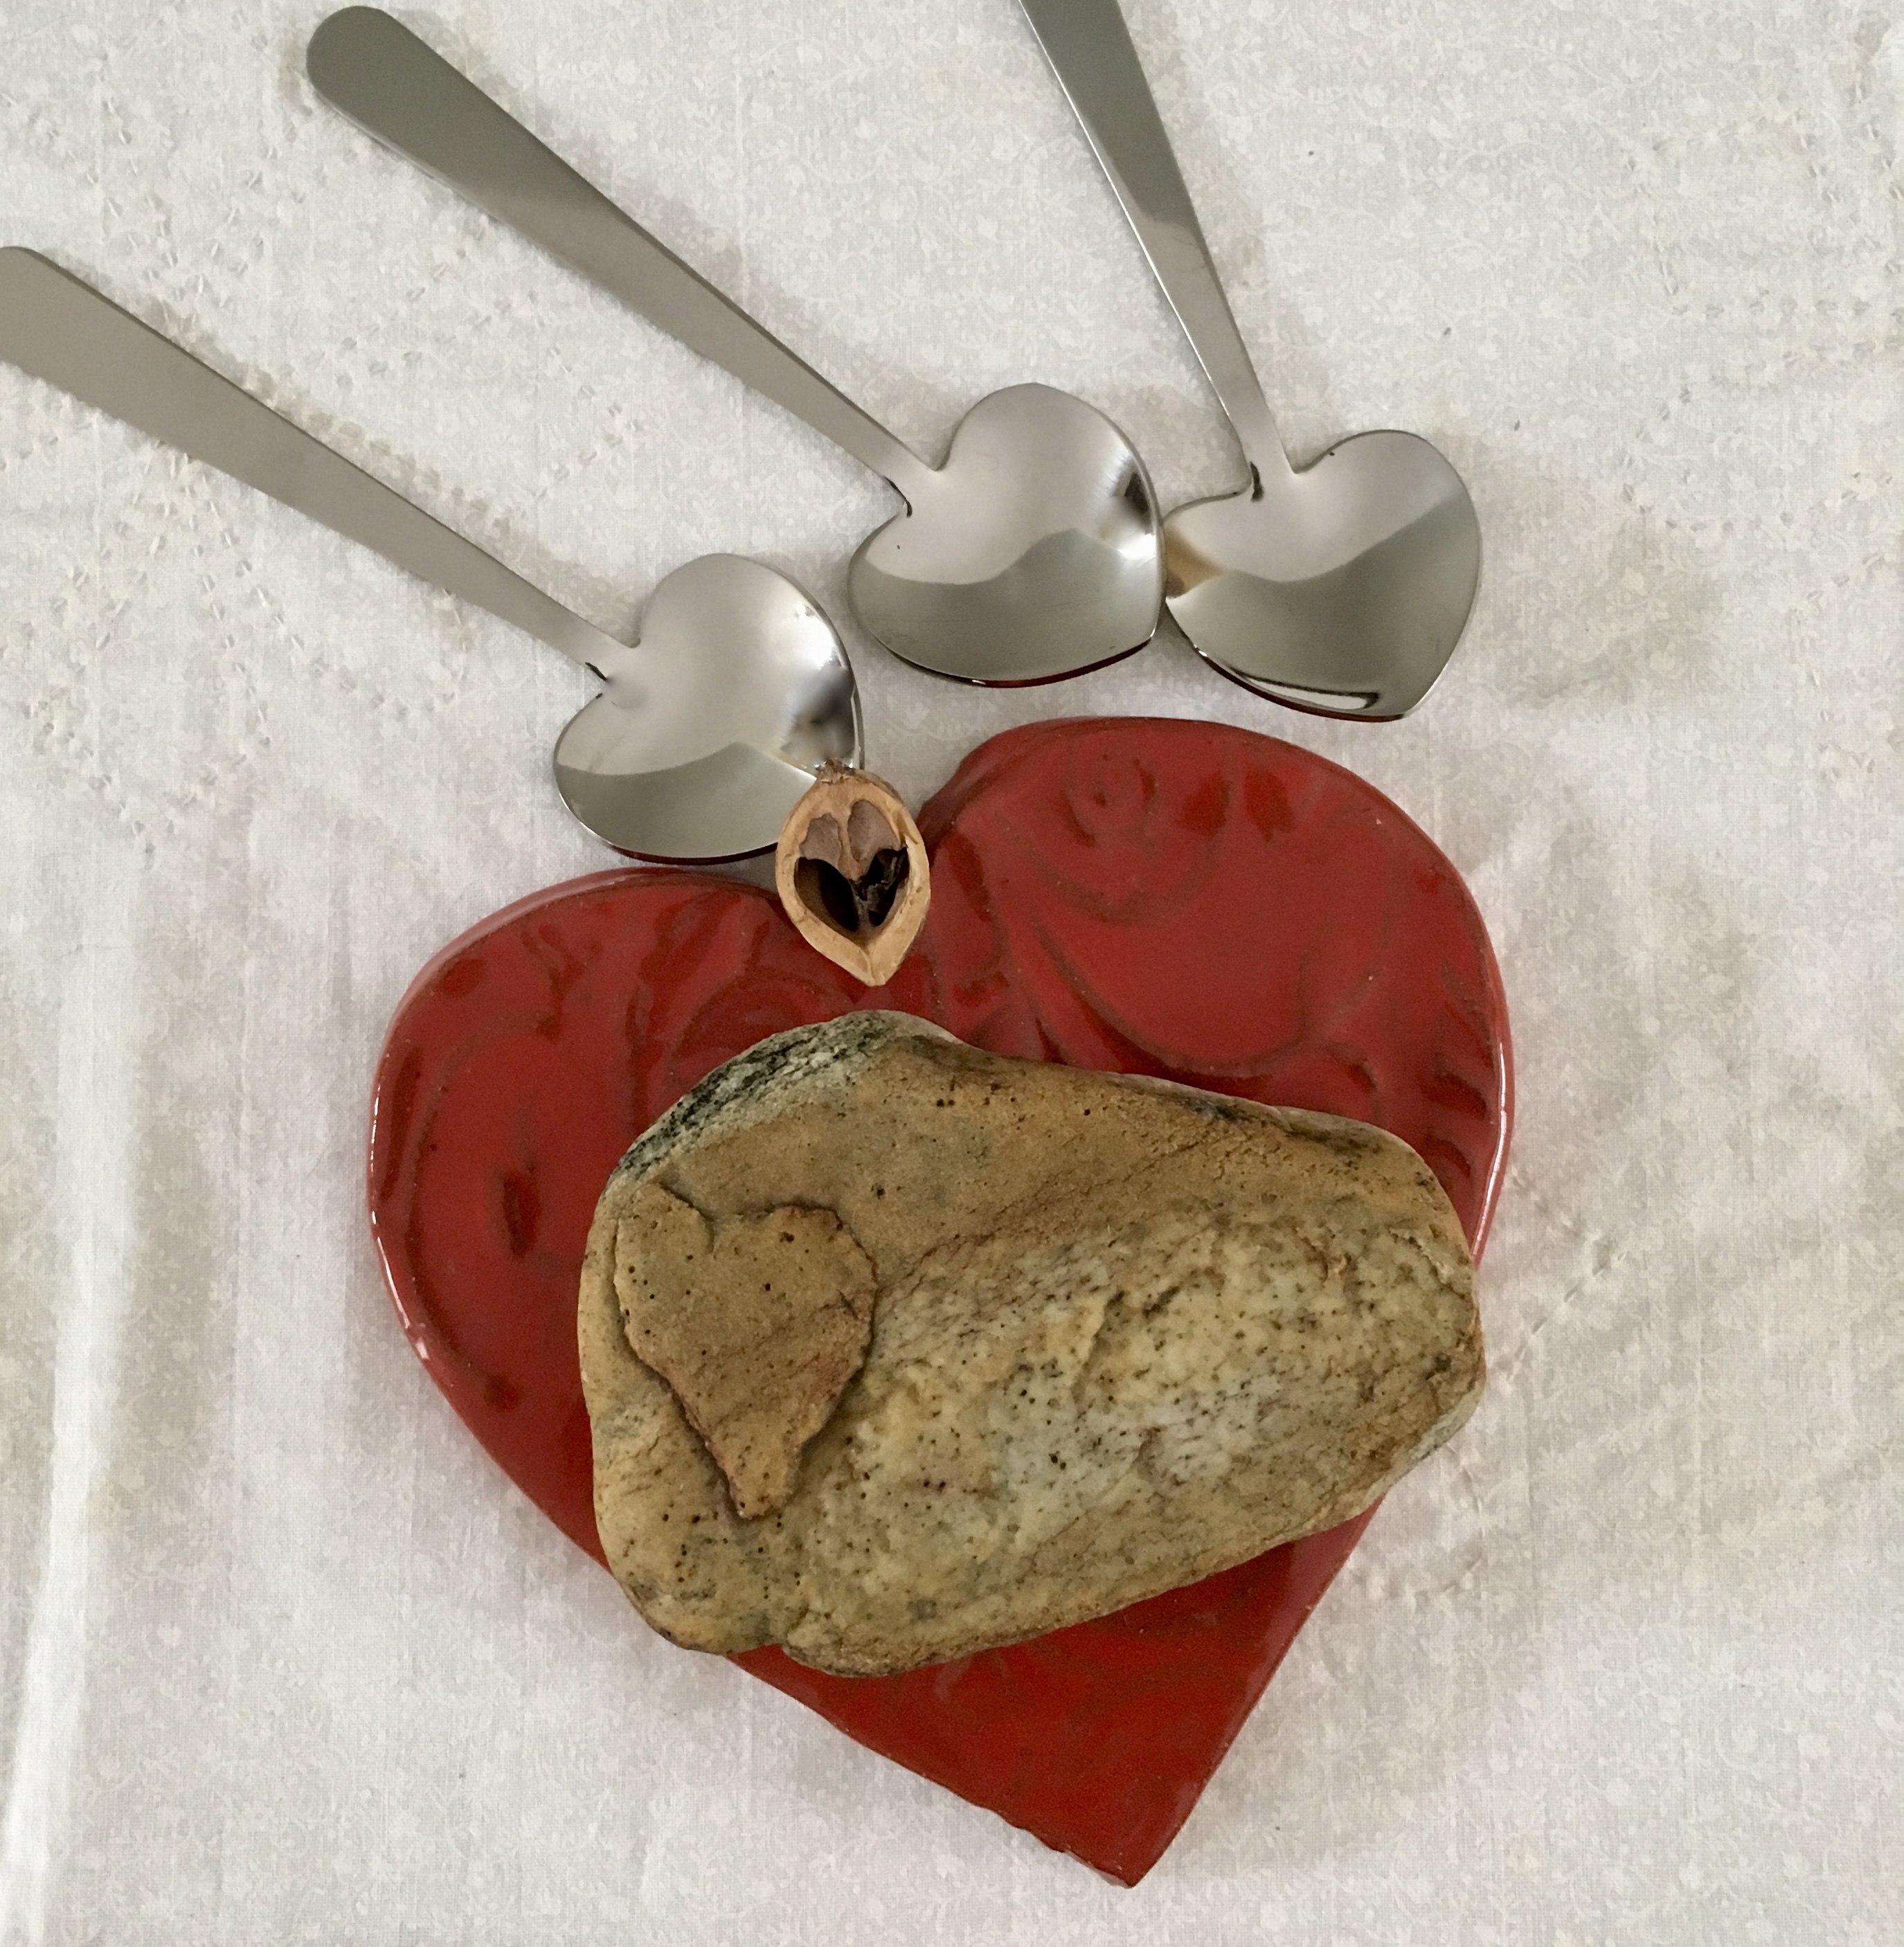 heart shaped stones, spoons and nuts